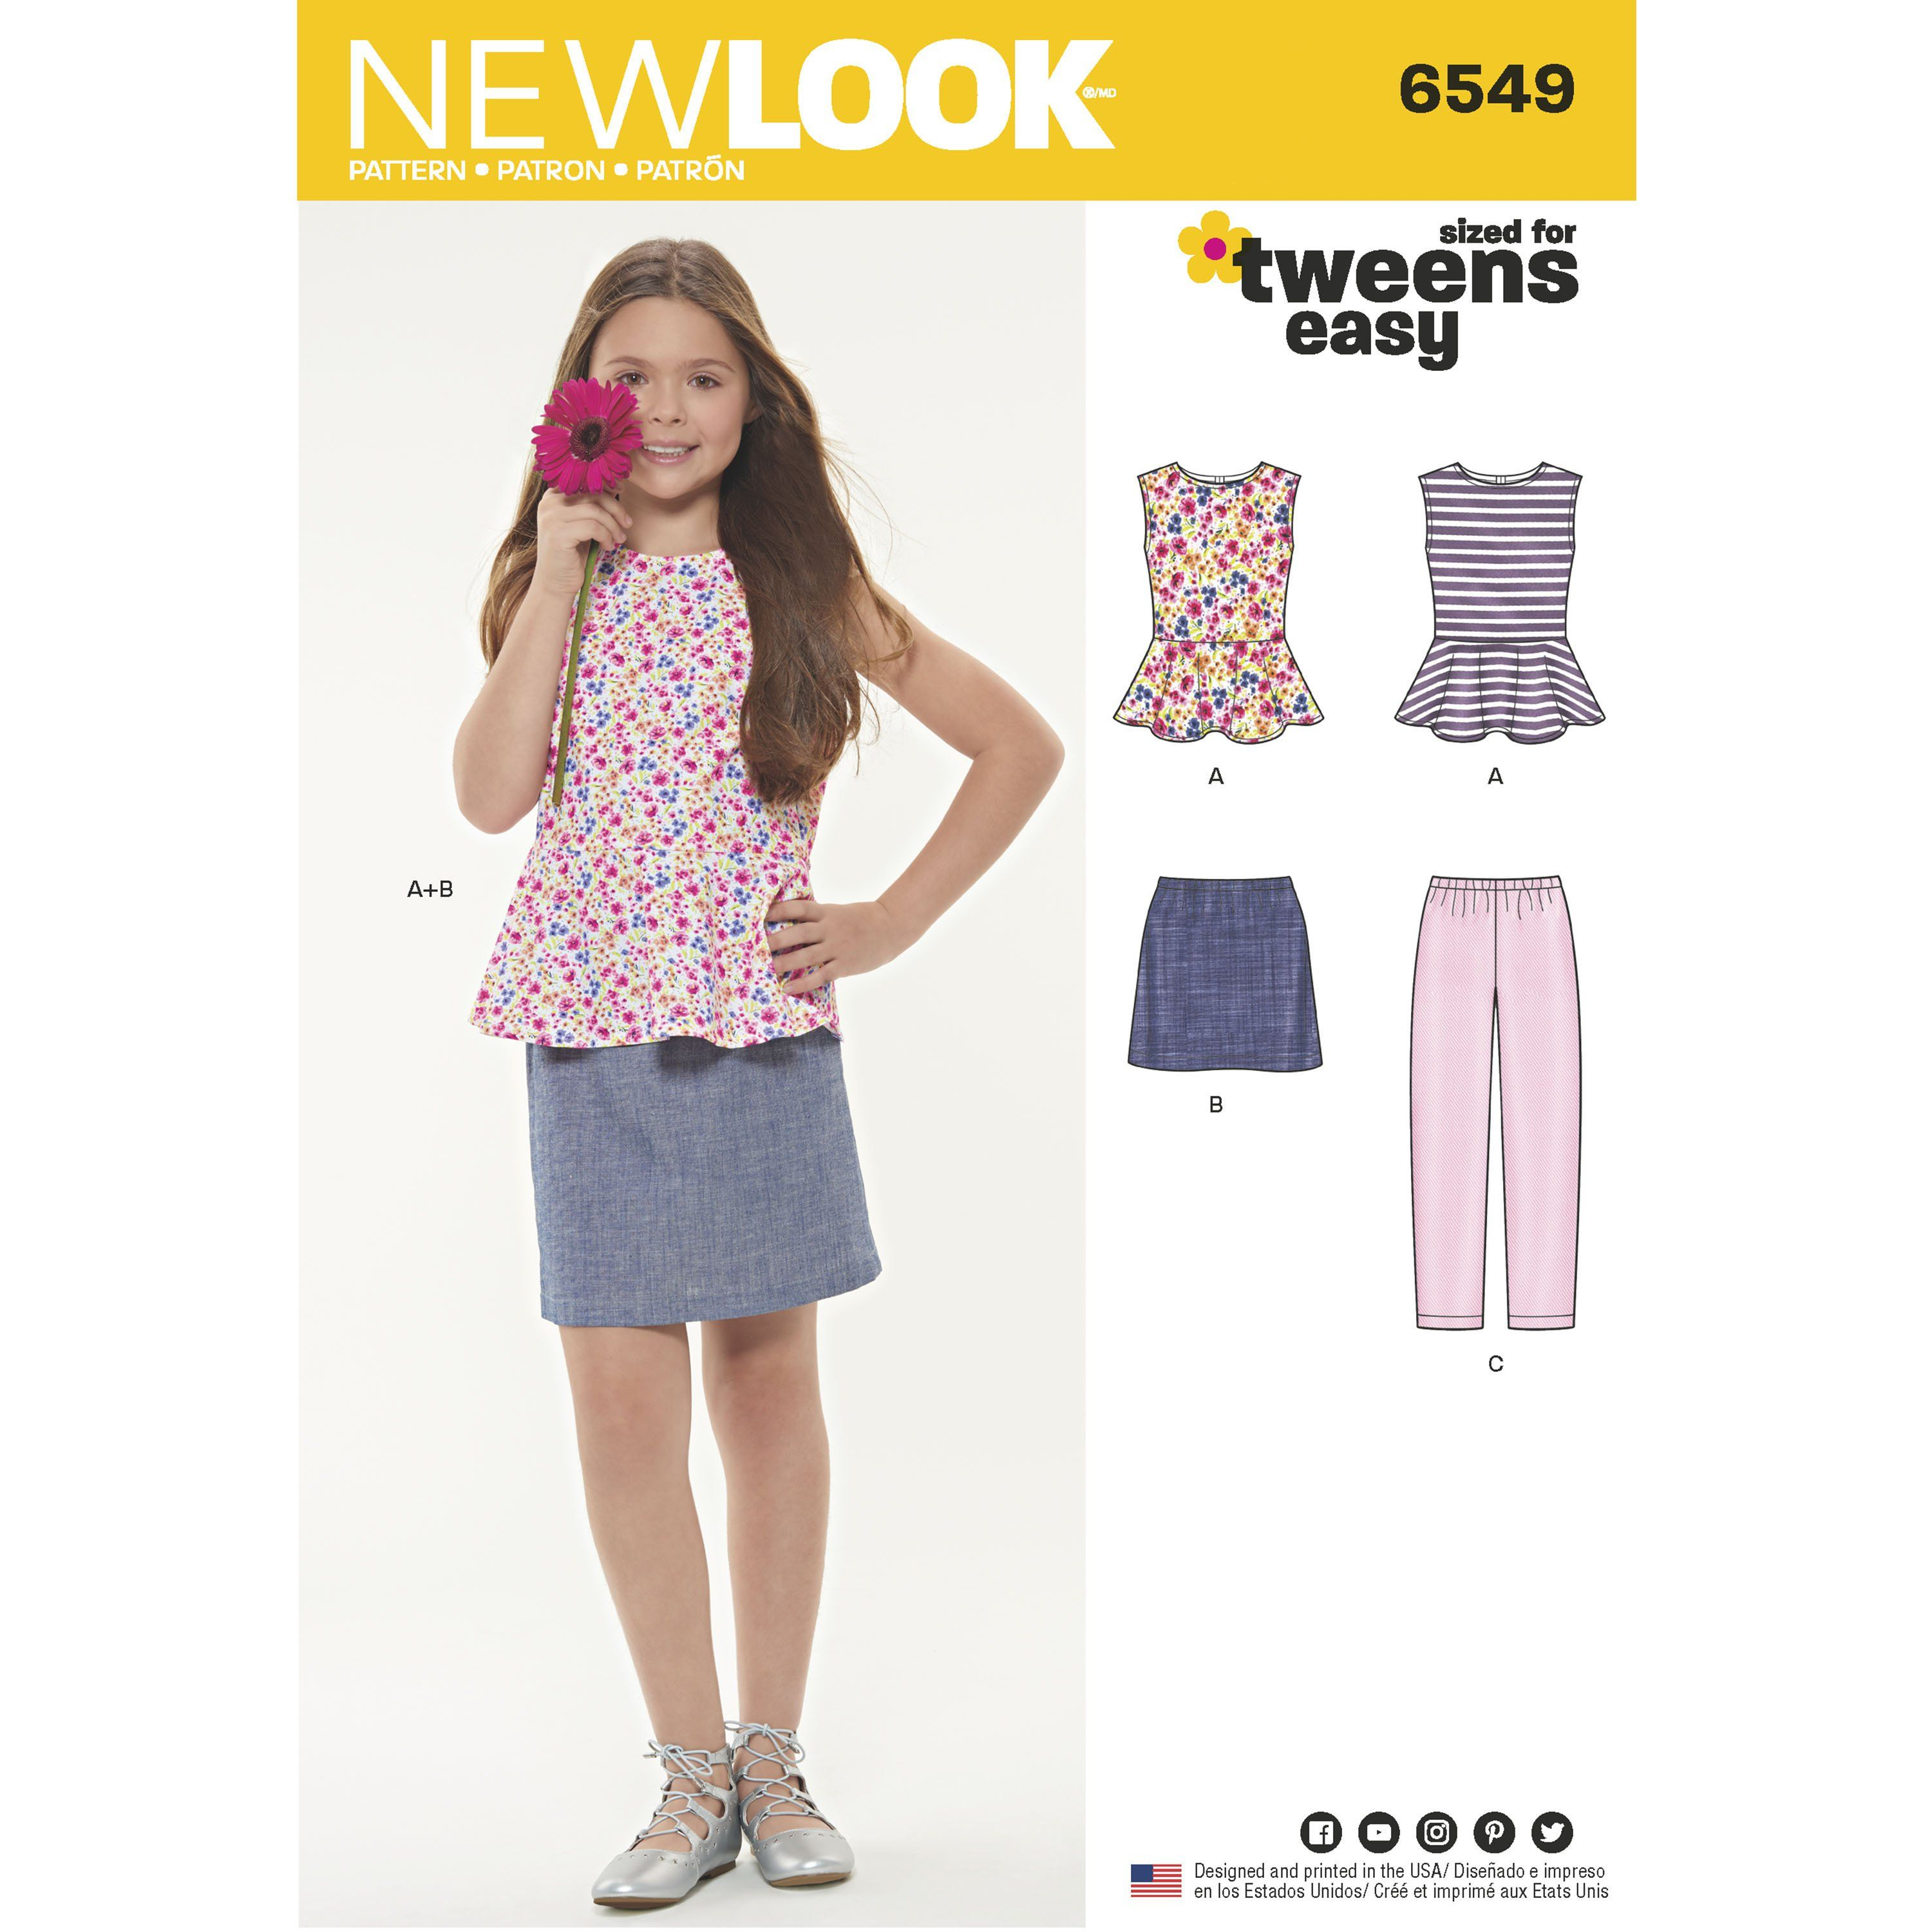 a993c2c95c1376 Purchase New Look New Look Pattern 6549 Girls' Top, Skirt and Pants and  read its pattern reviews. Find other Easy to Sew, Kids(boys & girls), sewing  ...